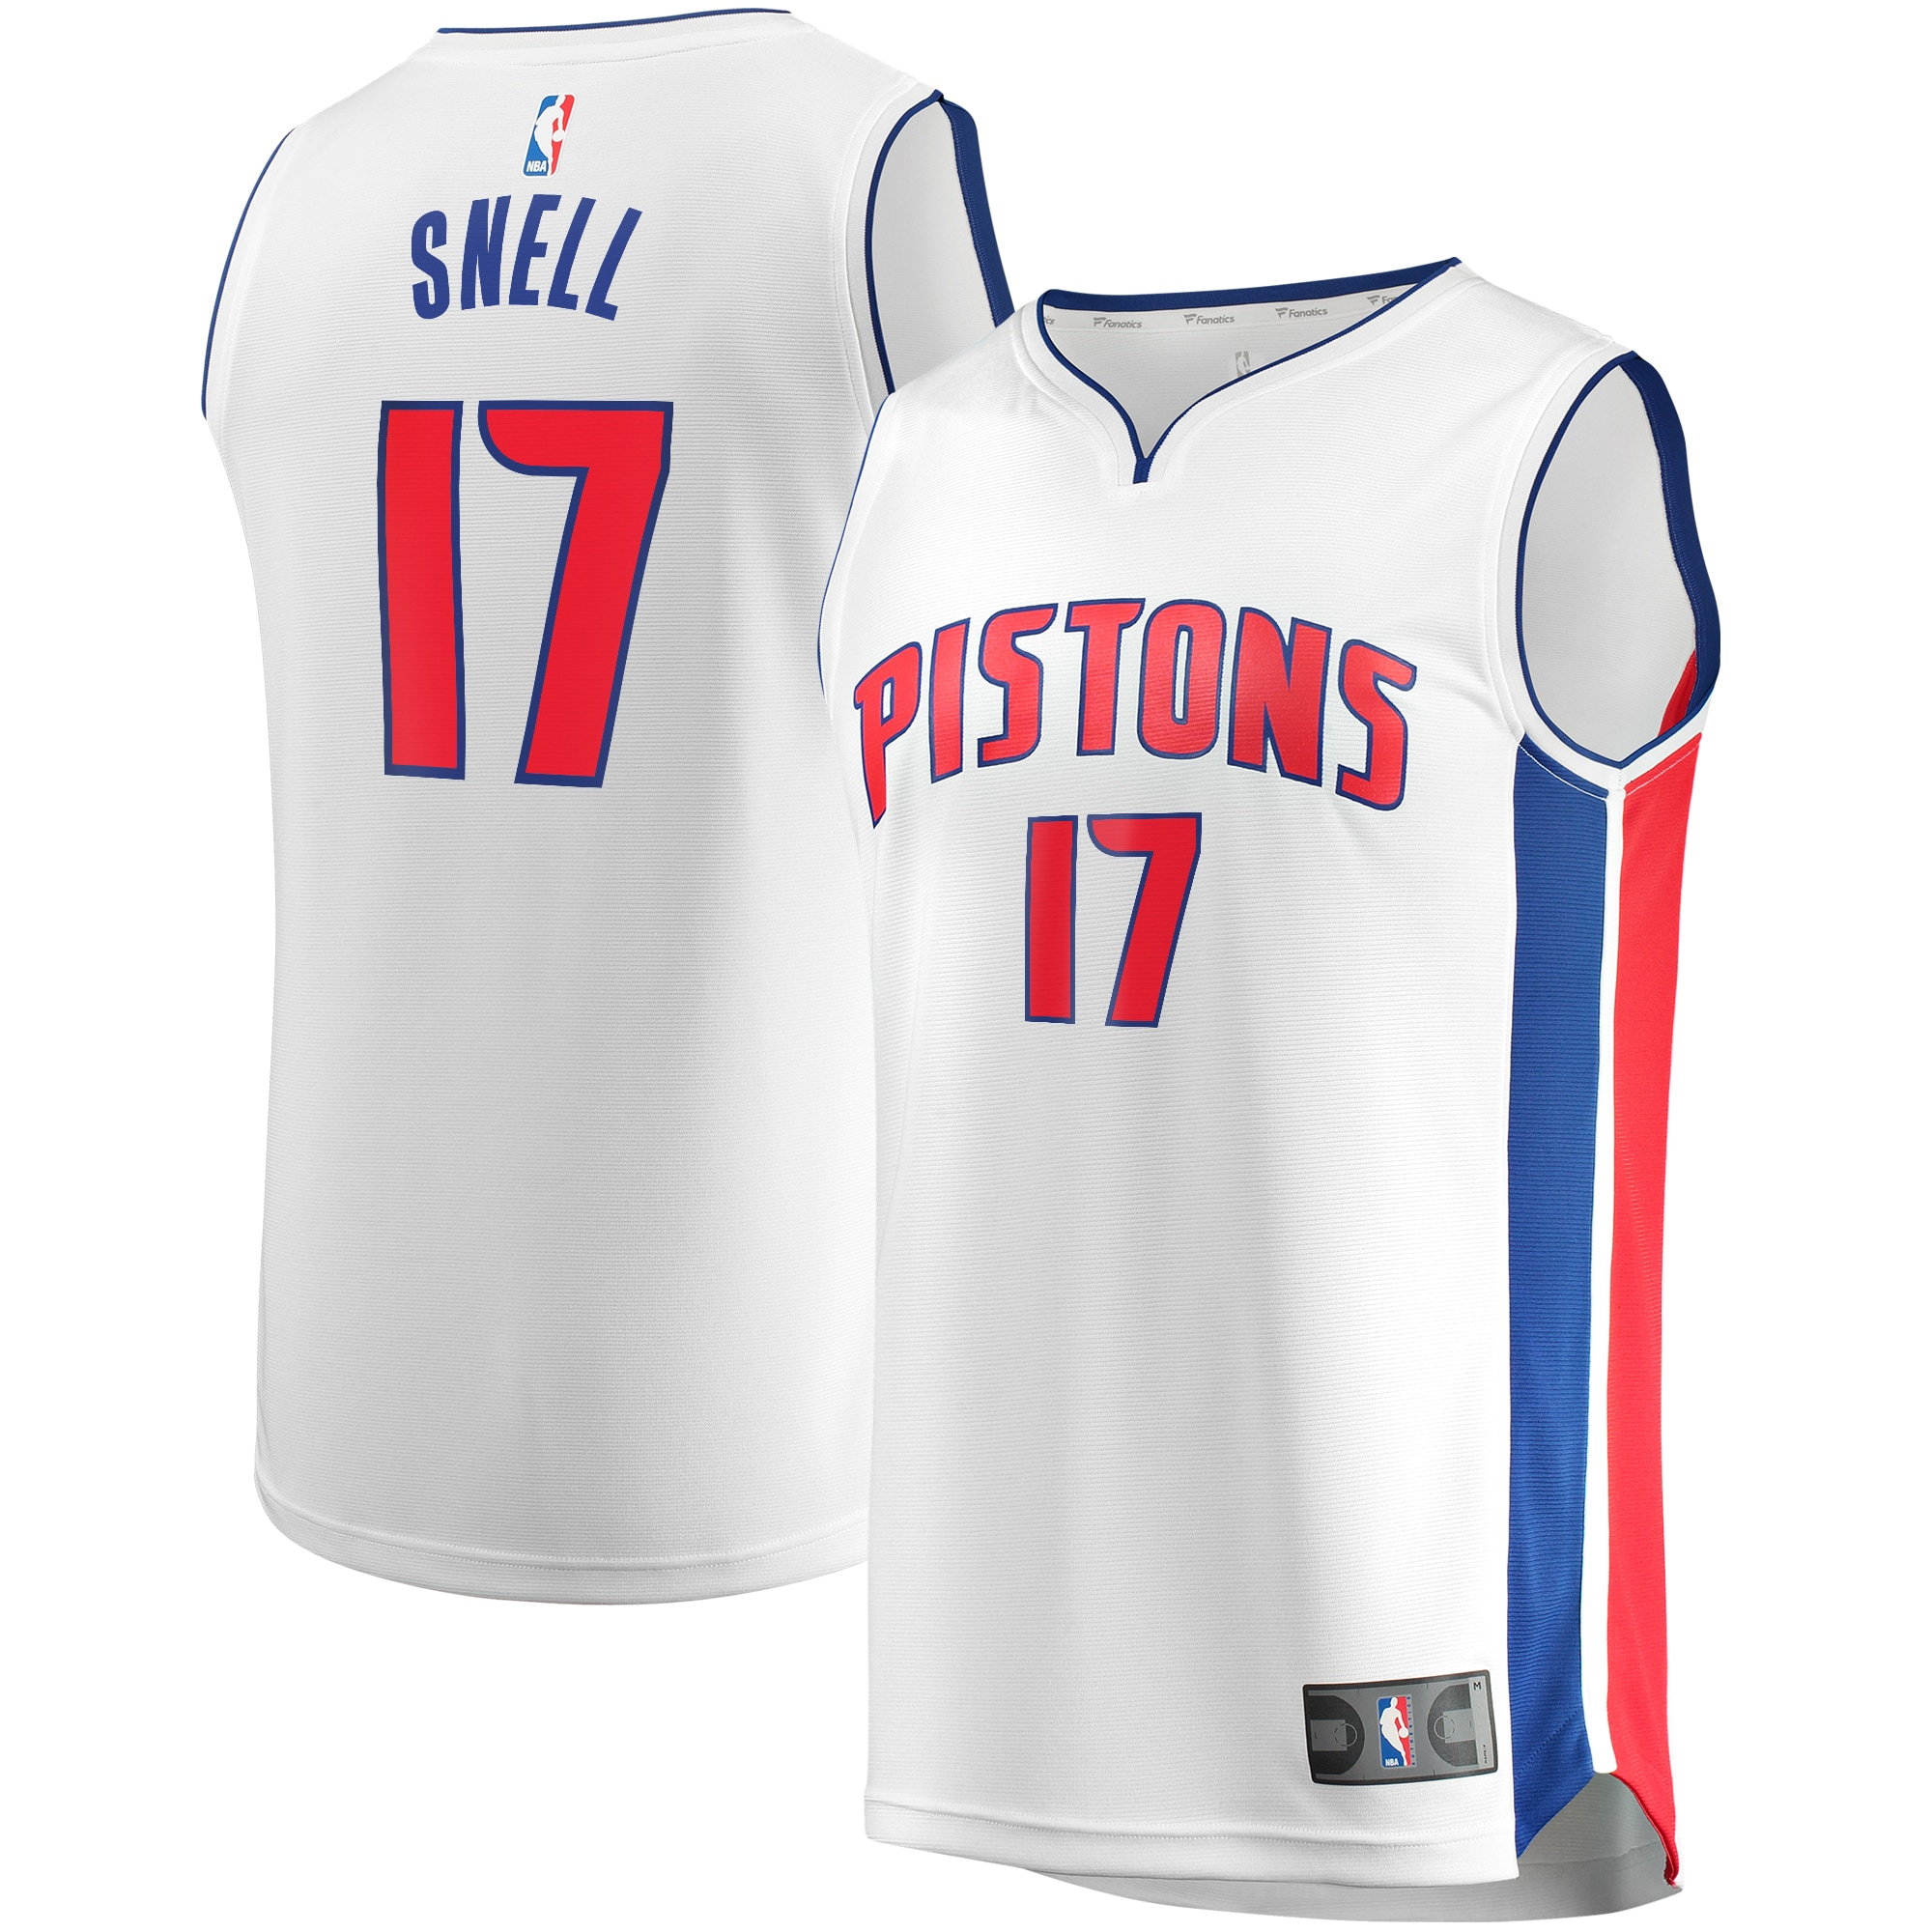 Tony Snell Detroit Pistons Fanatics Branded Fast Break Replica Player Team Jersey - Association Edition - White